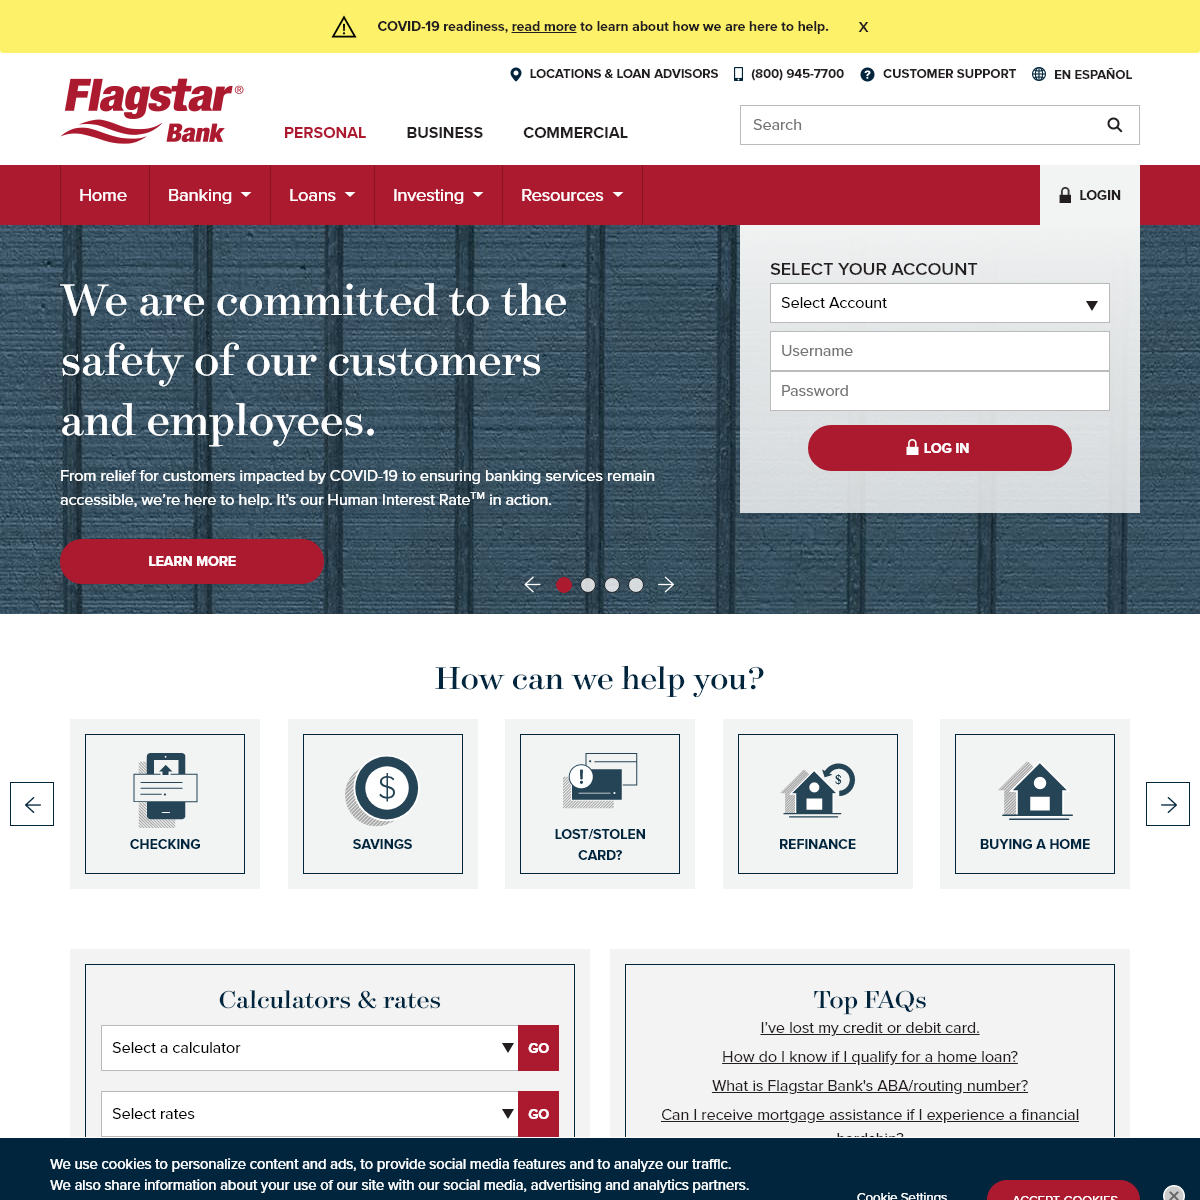 Banking Services- Personal, Business, & Commercial - Flagstar Bank